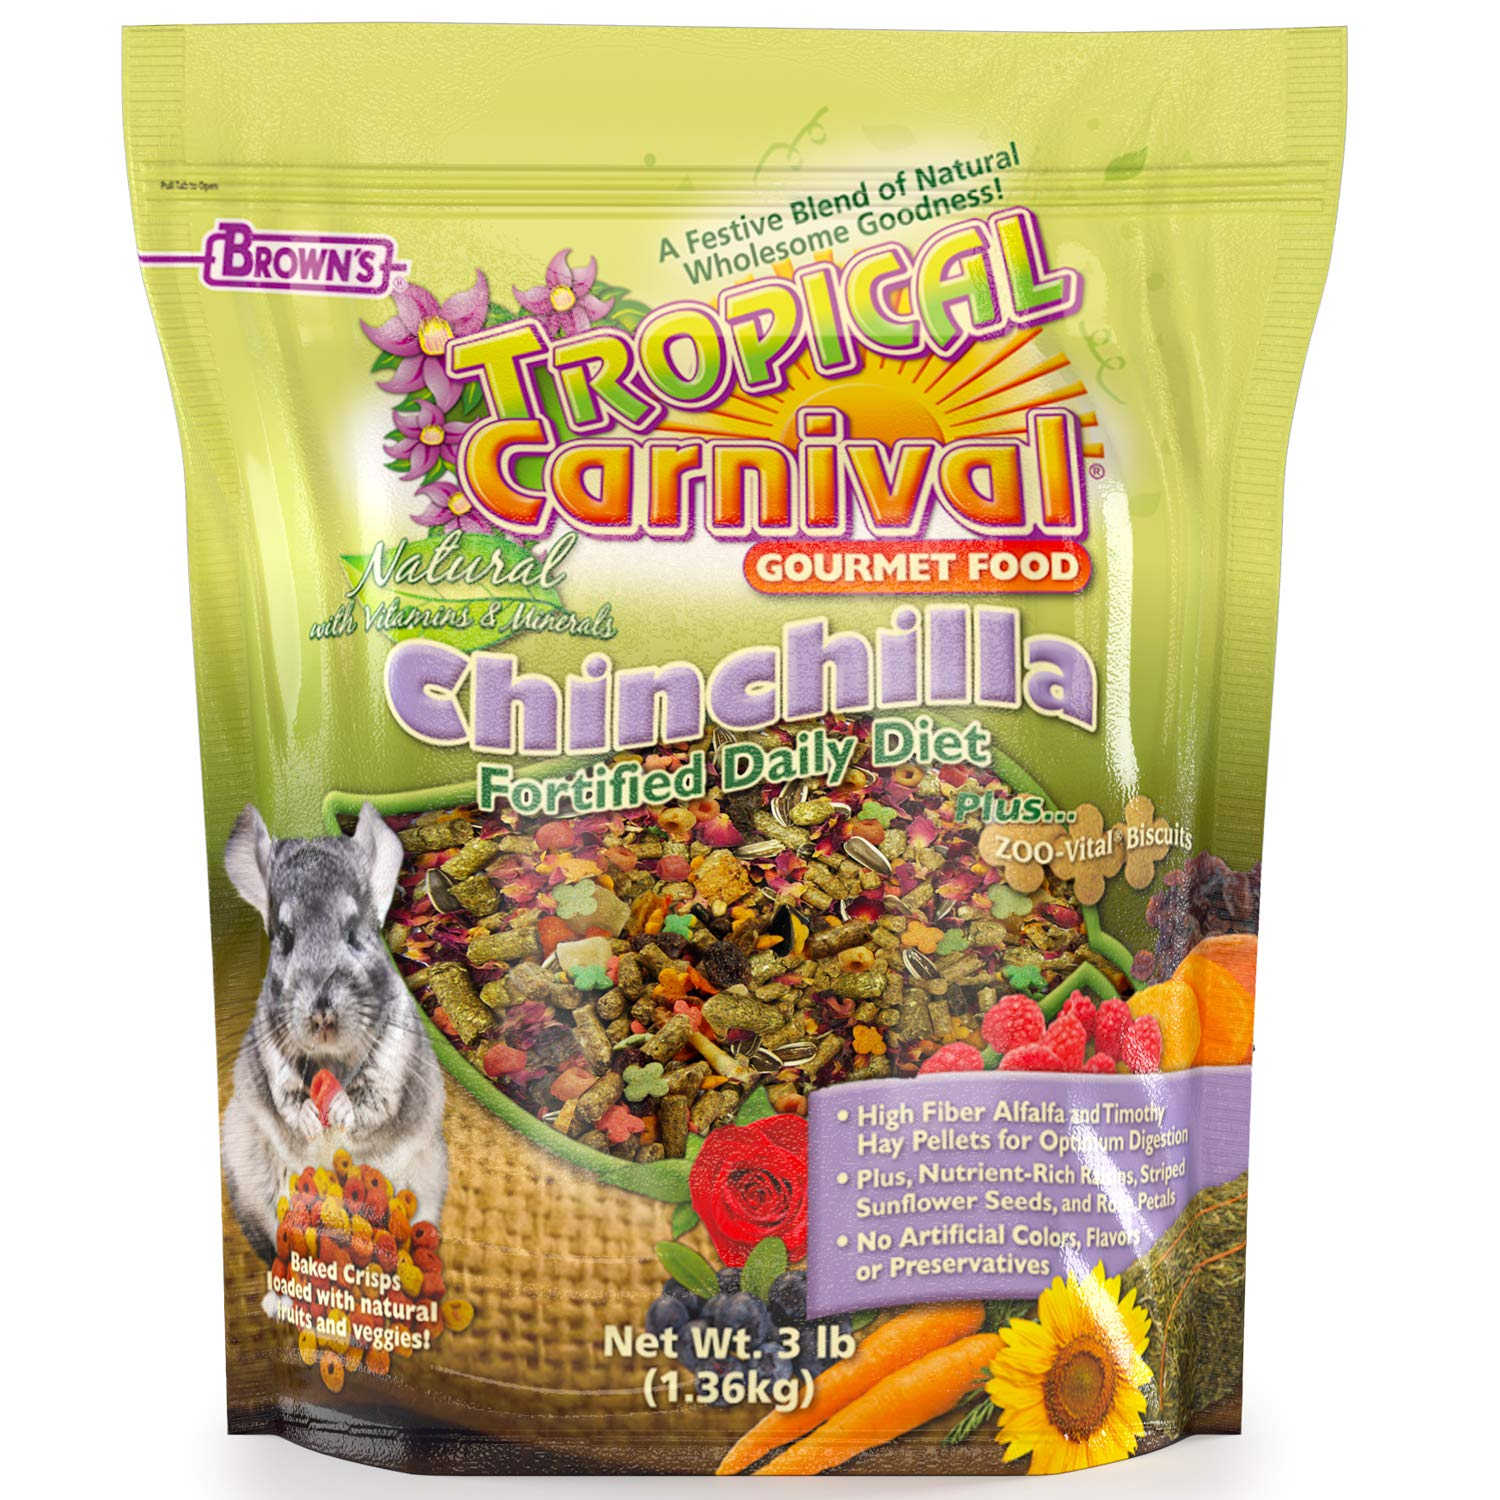 Tropical Carnival F.M. Brown's Natural Chinchilla Food, 3-lb Bag - Vitamin-Nutrient Fortified Daily Diet with High Fiber Alfalfa and Timothy Hay Pellets for Optimum Digestion